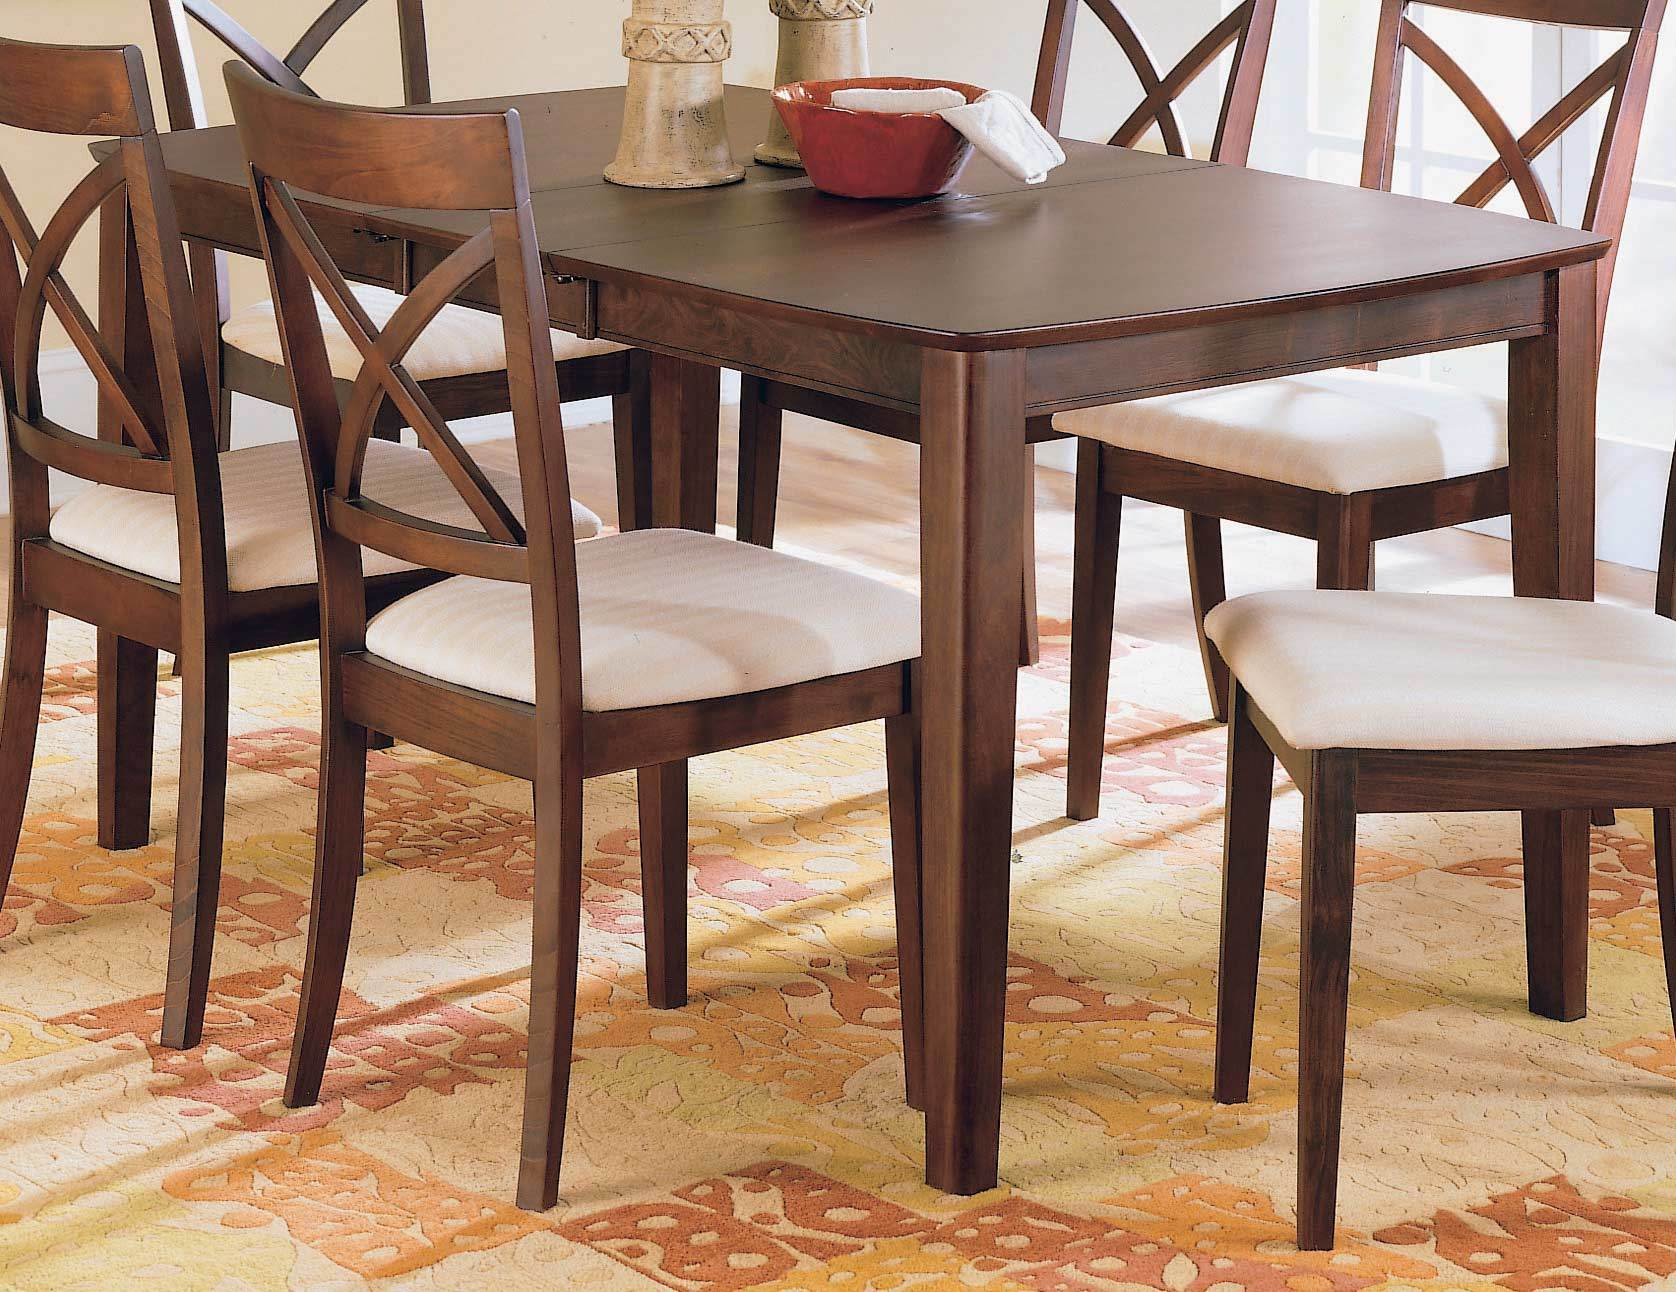 Dining table dining table and chairs thailand for Dining table and chairs